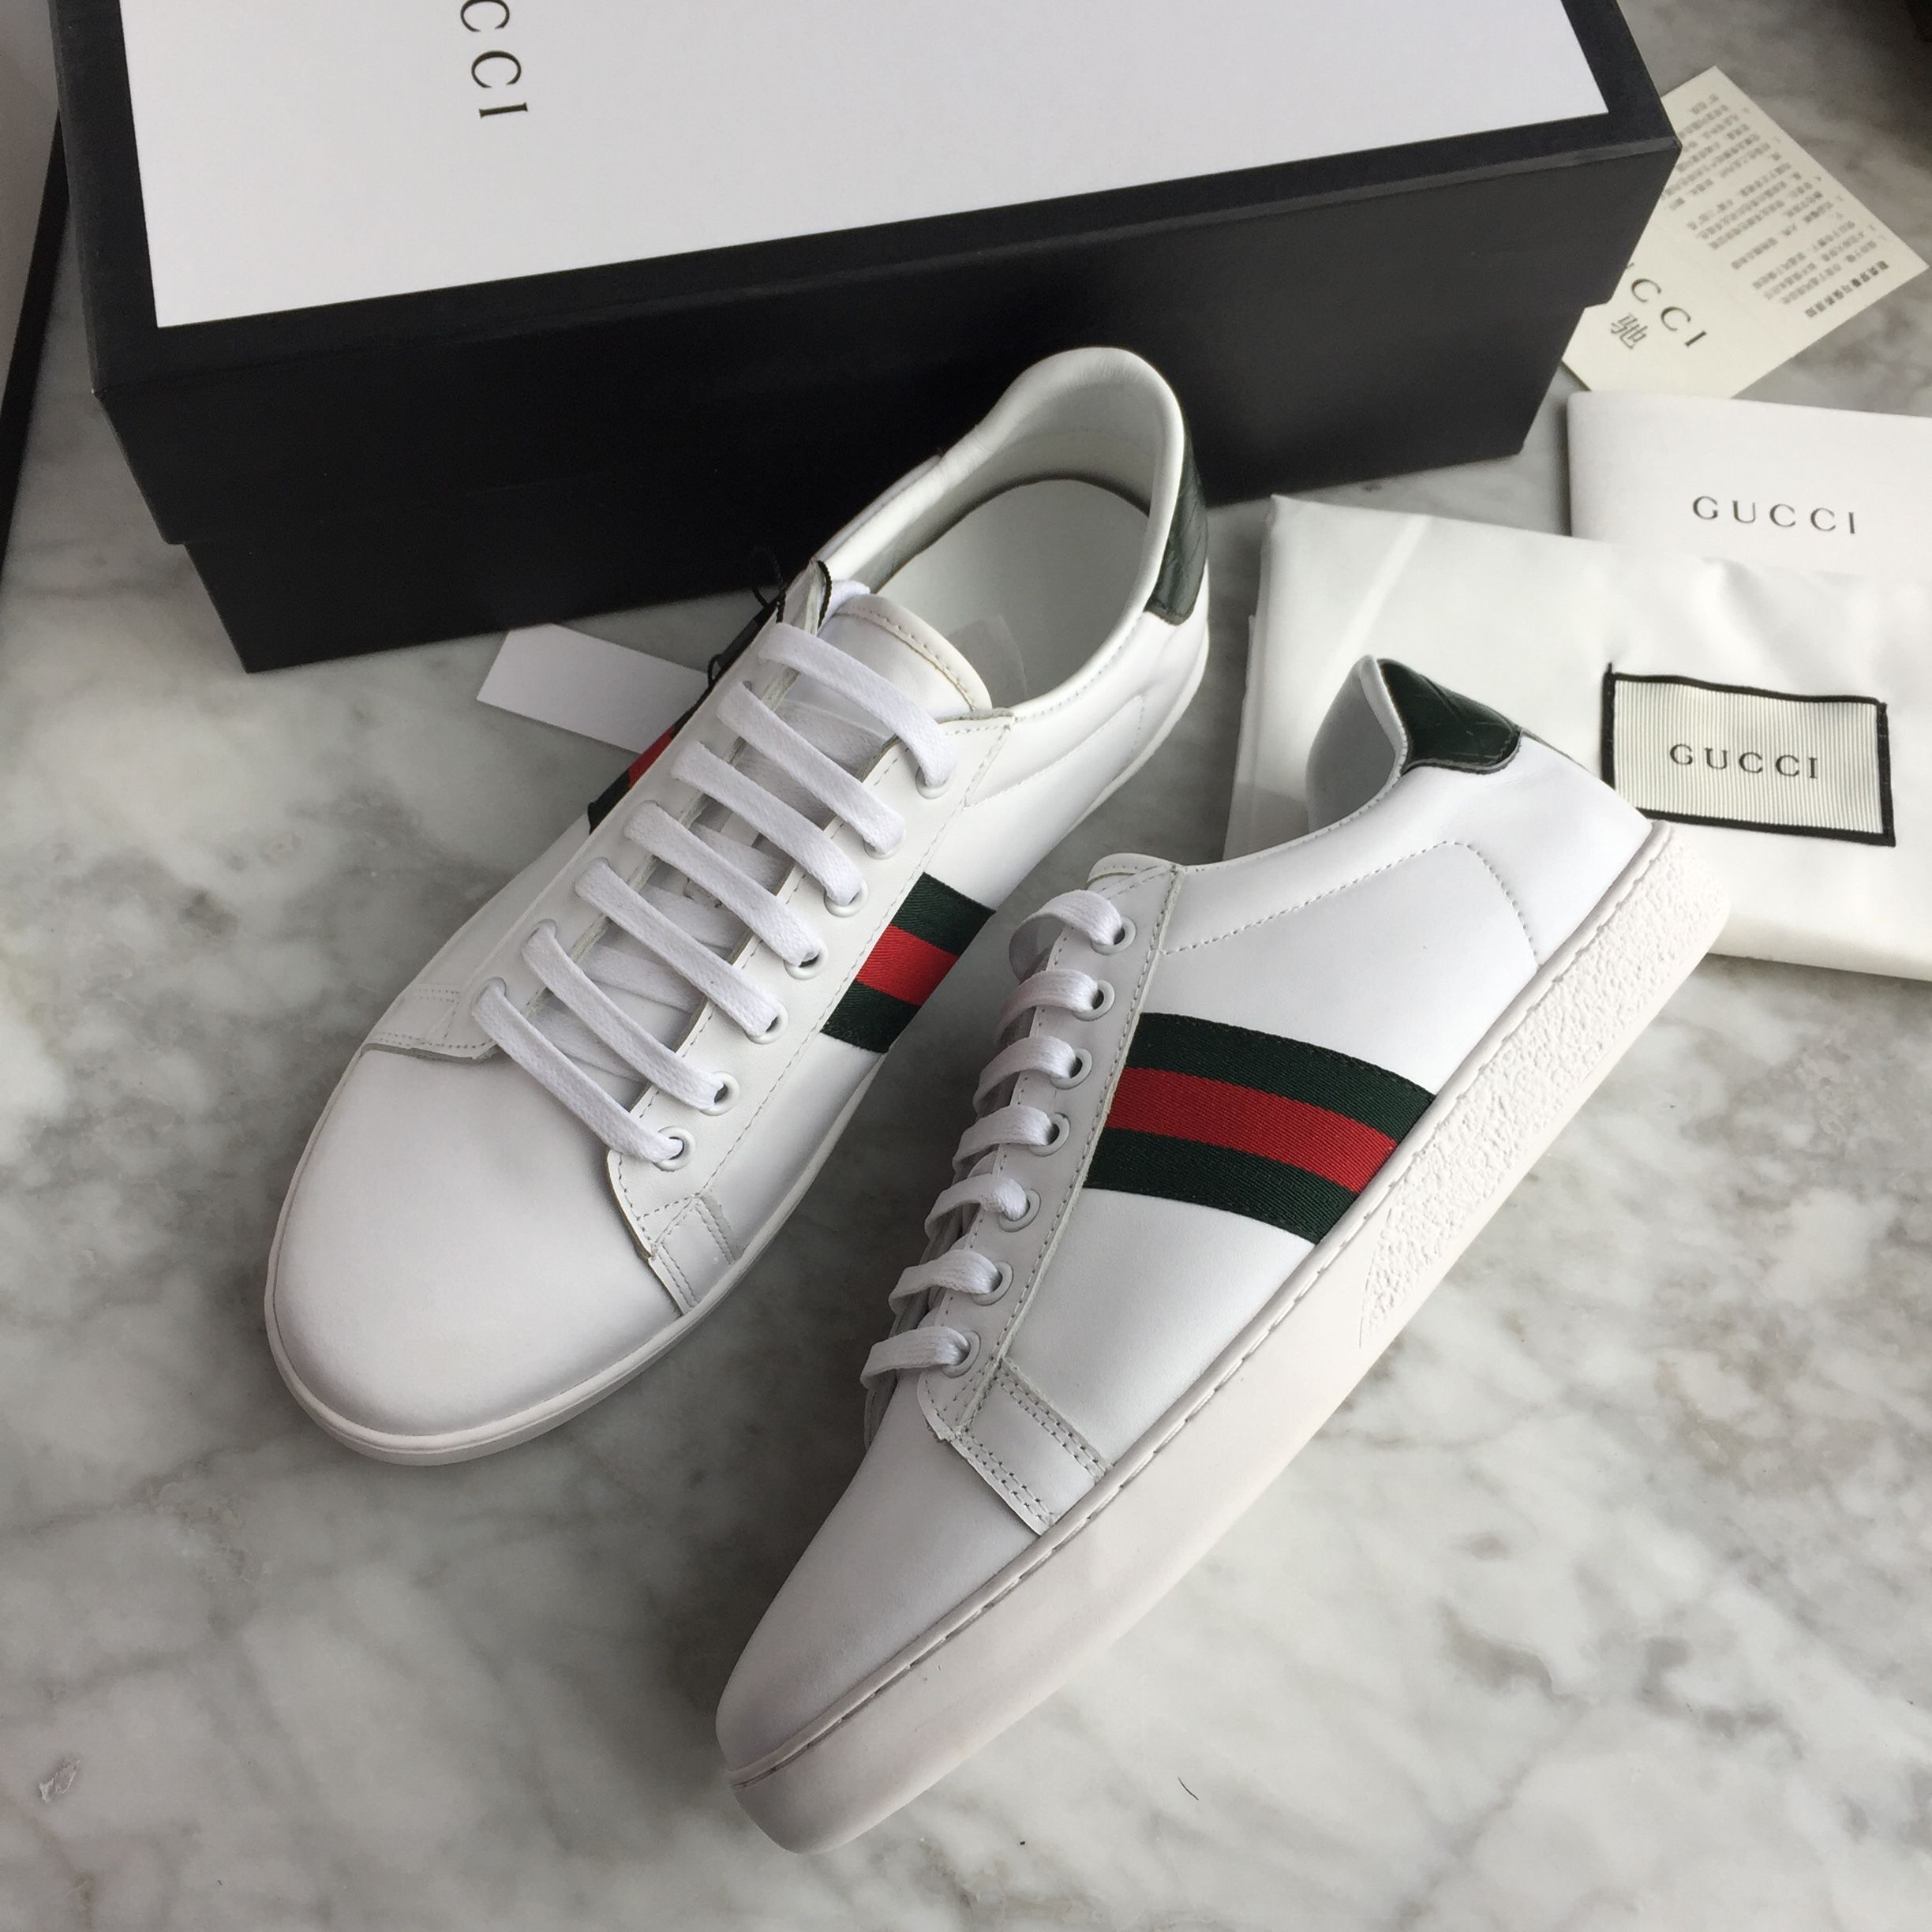 Gucci unisex woman man shoes white sneakers